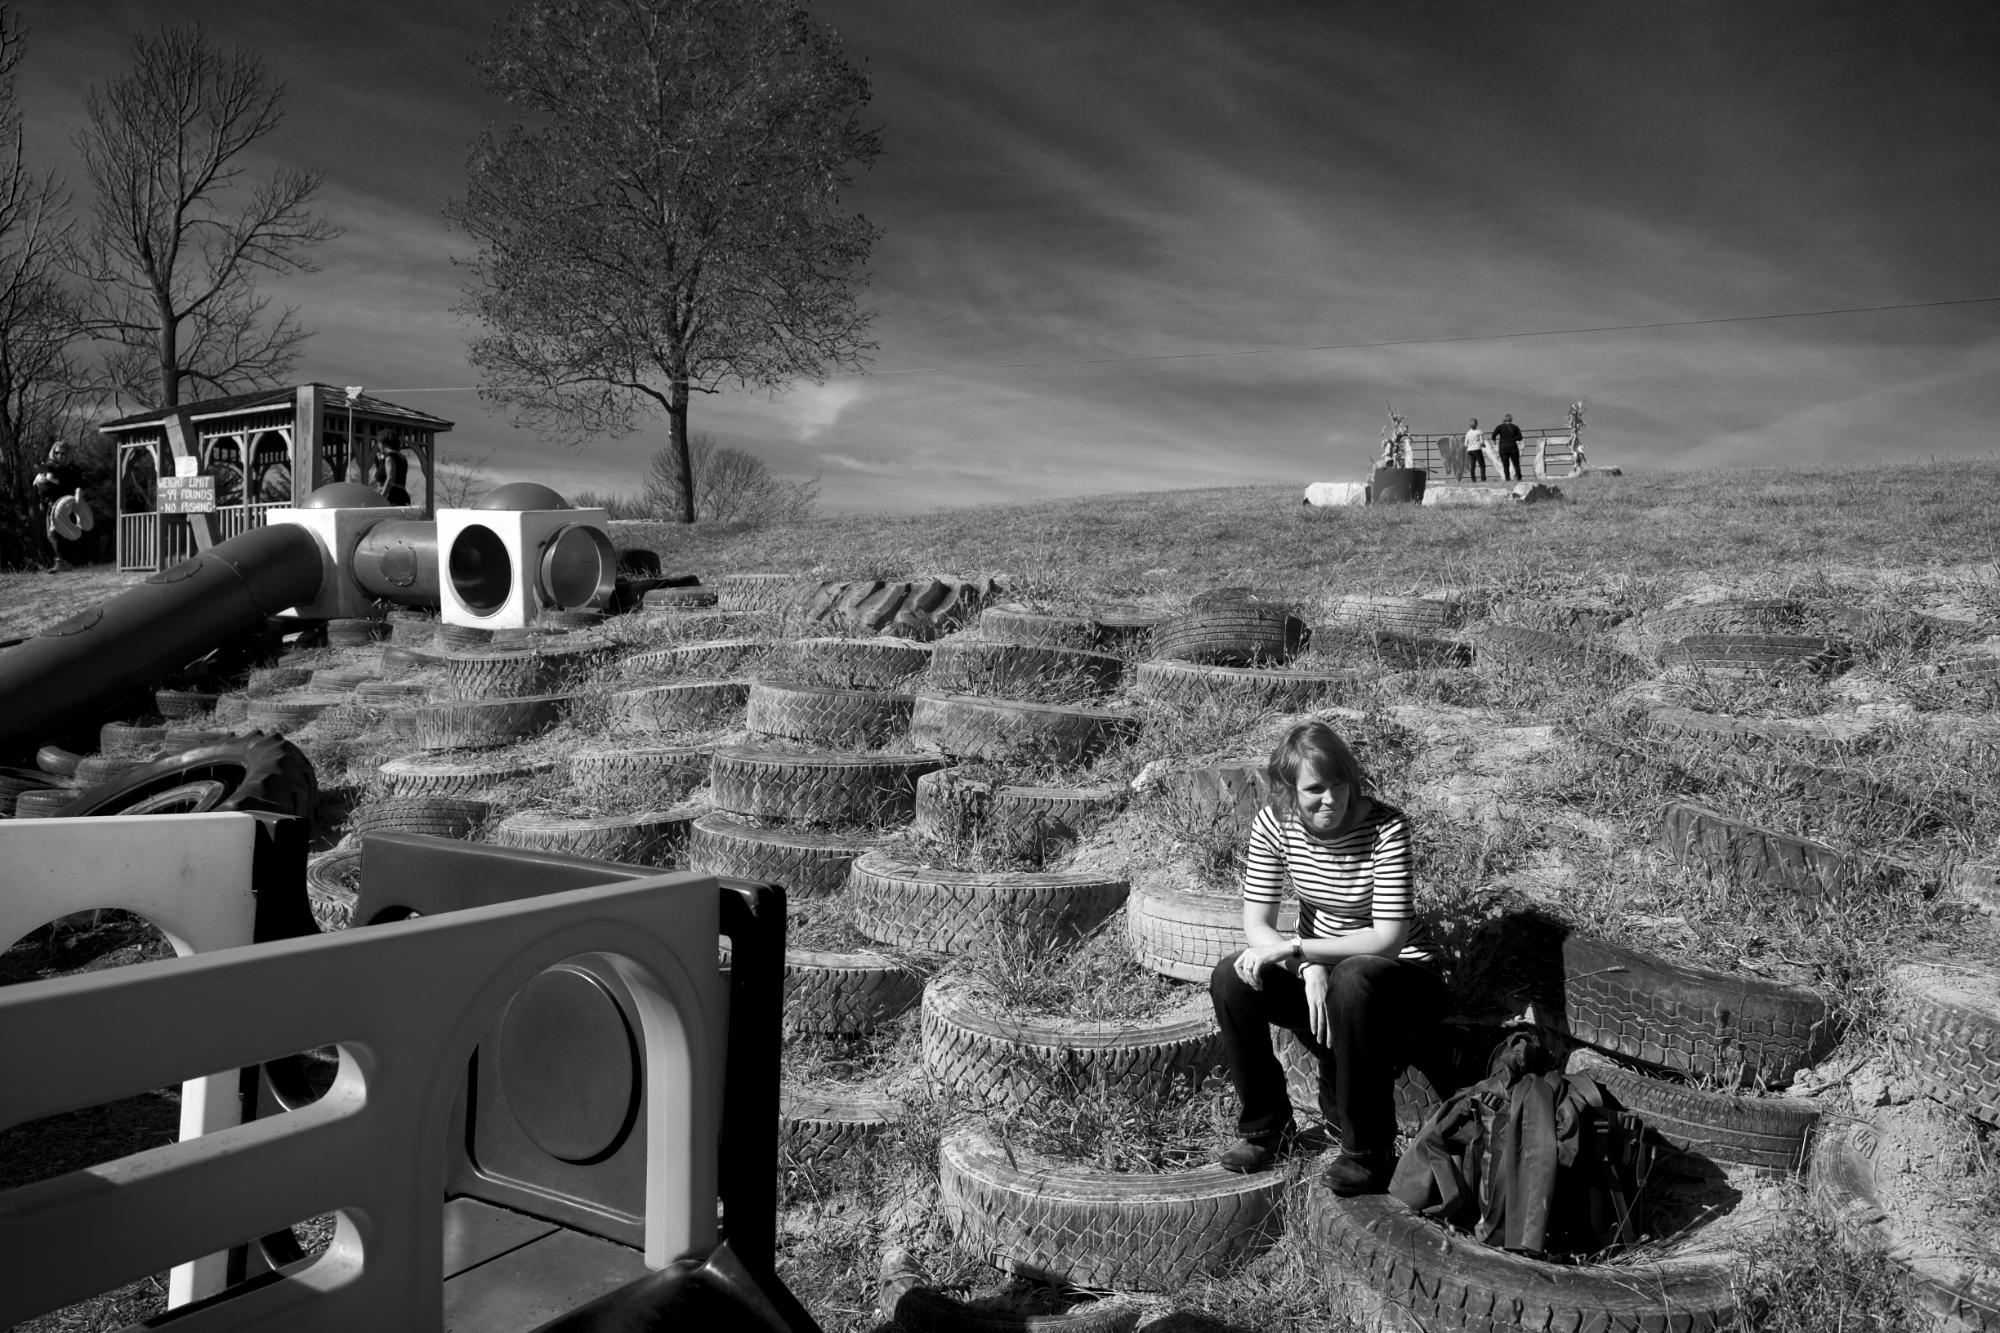 <p>My wife, Jackie, chilling on a pile of old tires.</p>\n